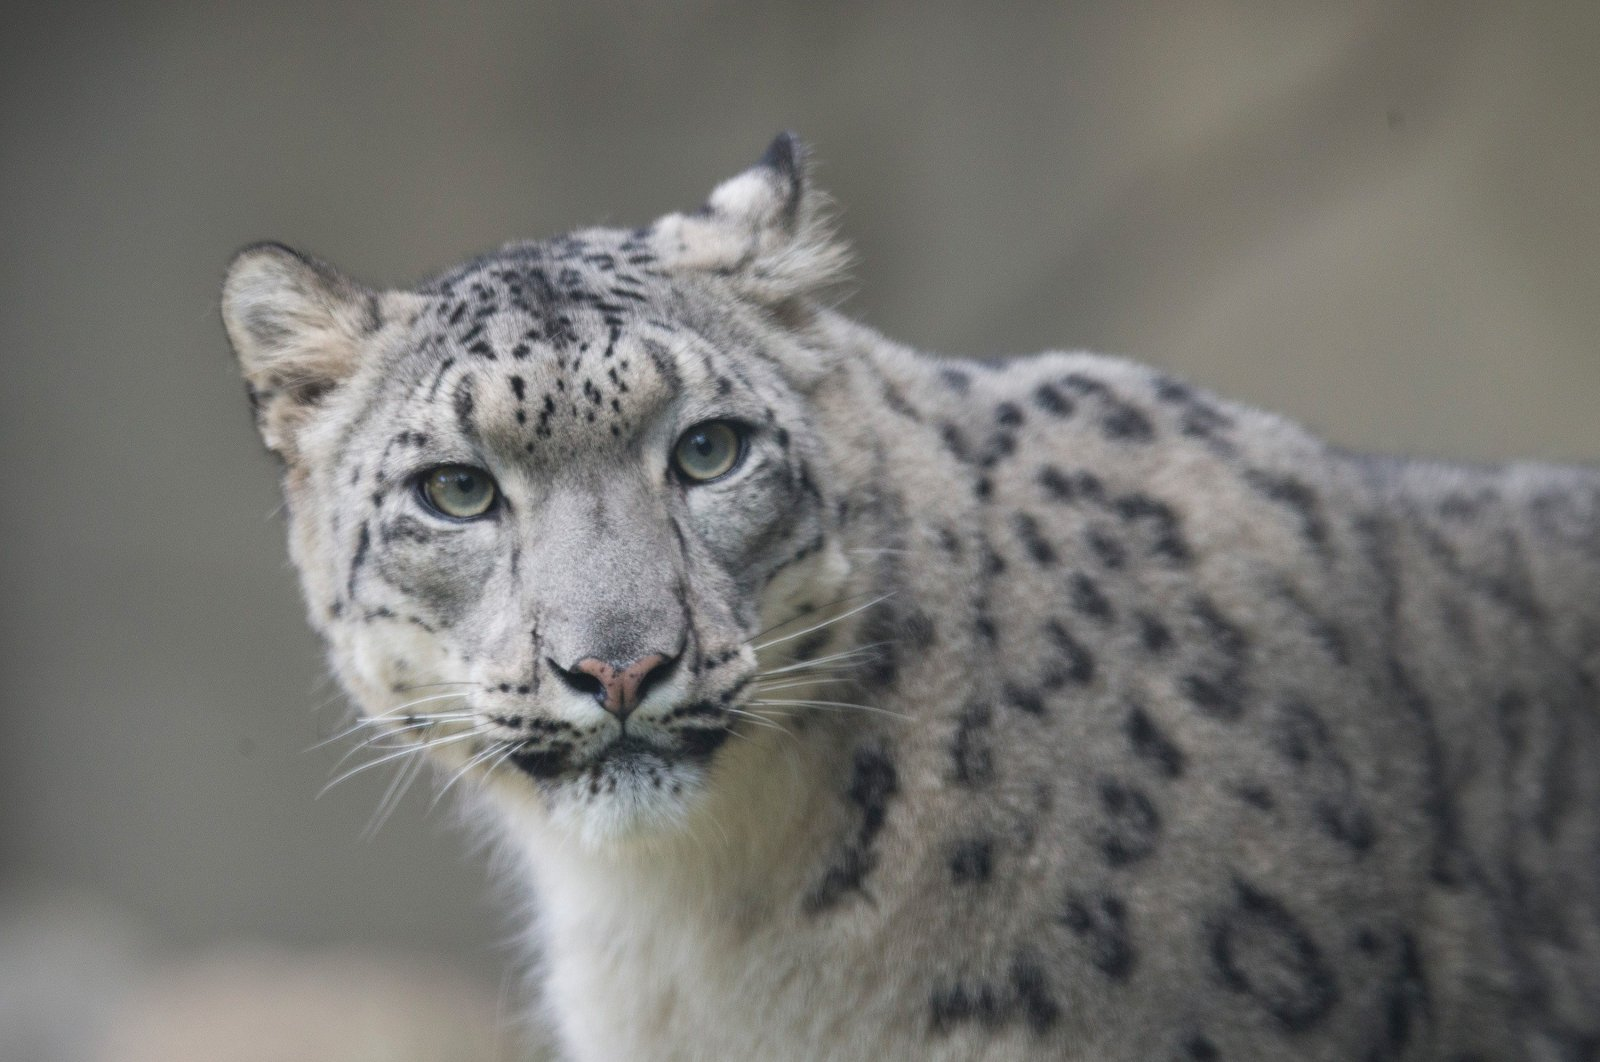 A female snow leopard explores her habitat at the Brookfield Zoo in Brookfield, Illinois, U.S., Oct. 7, 2015. (Getty Images/AFP Photo)